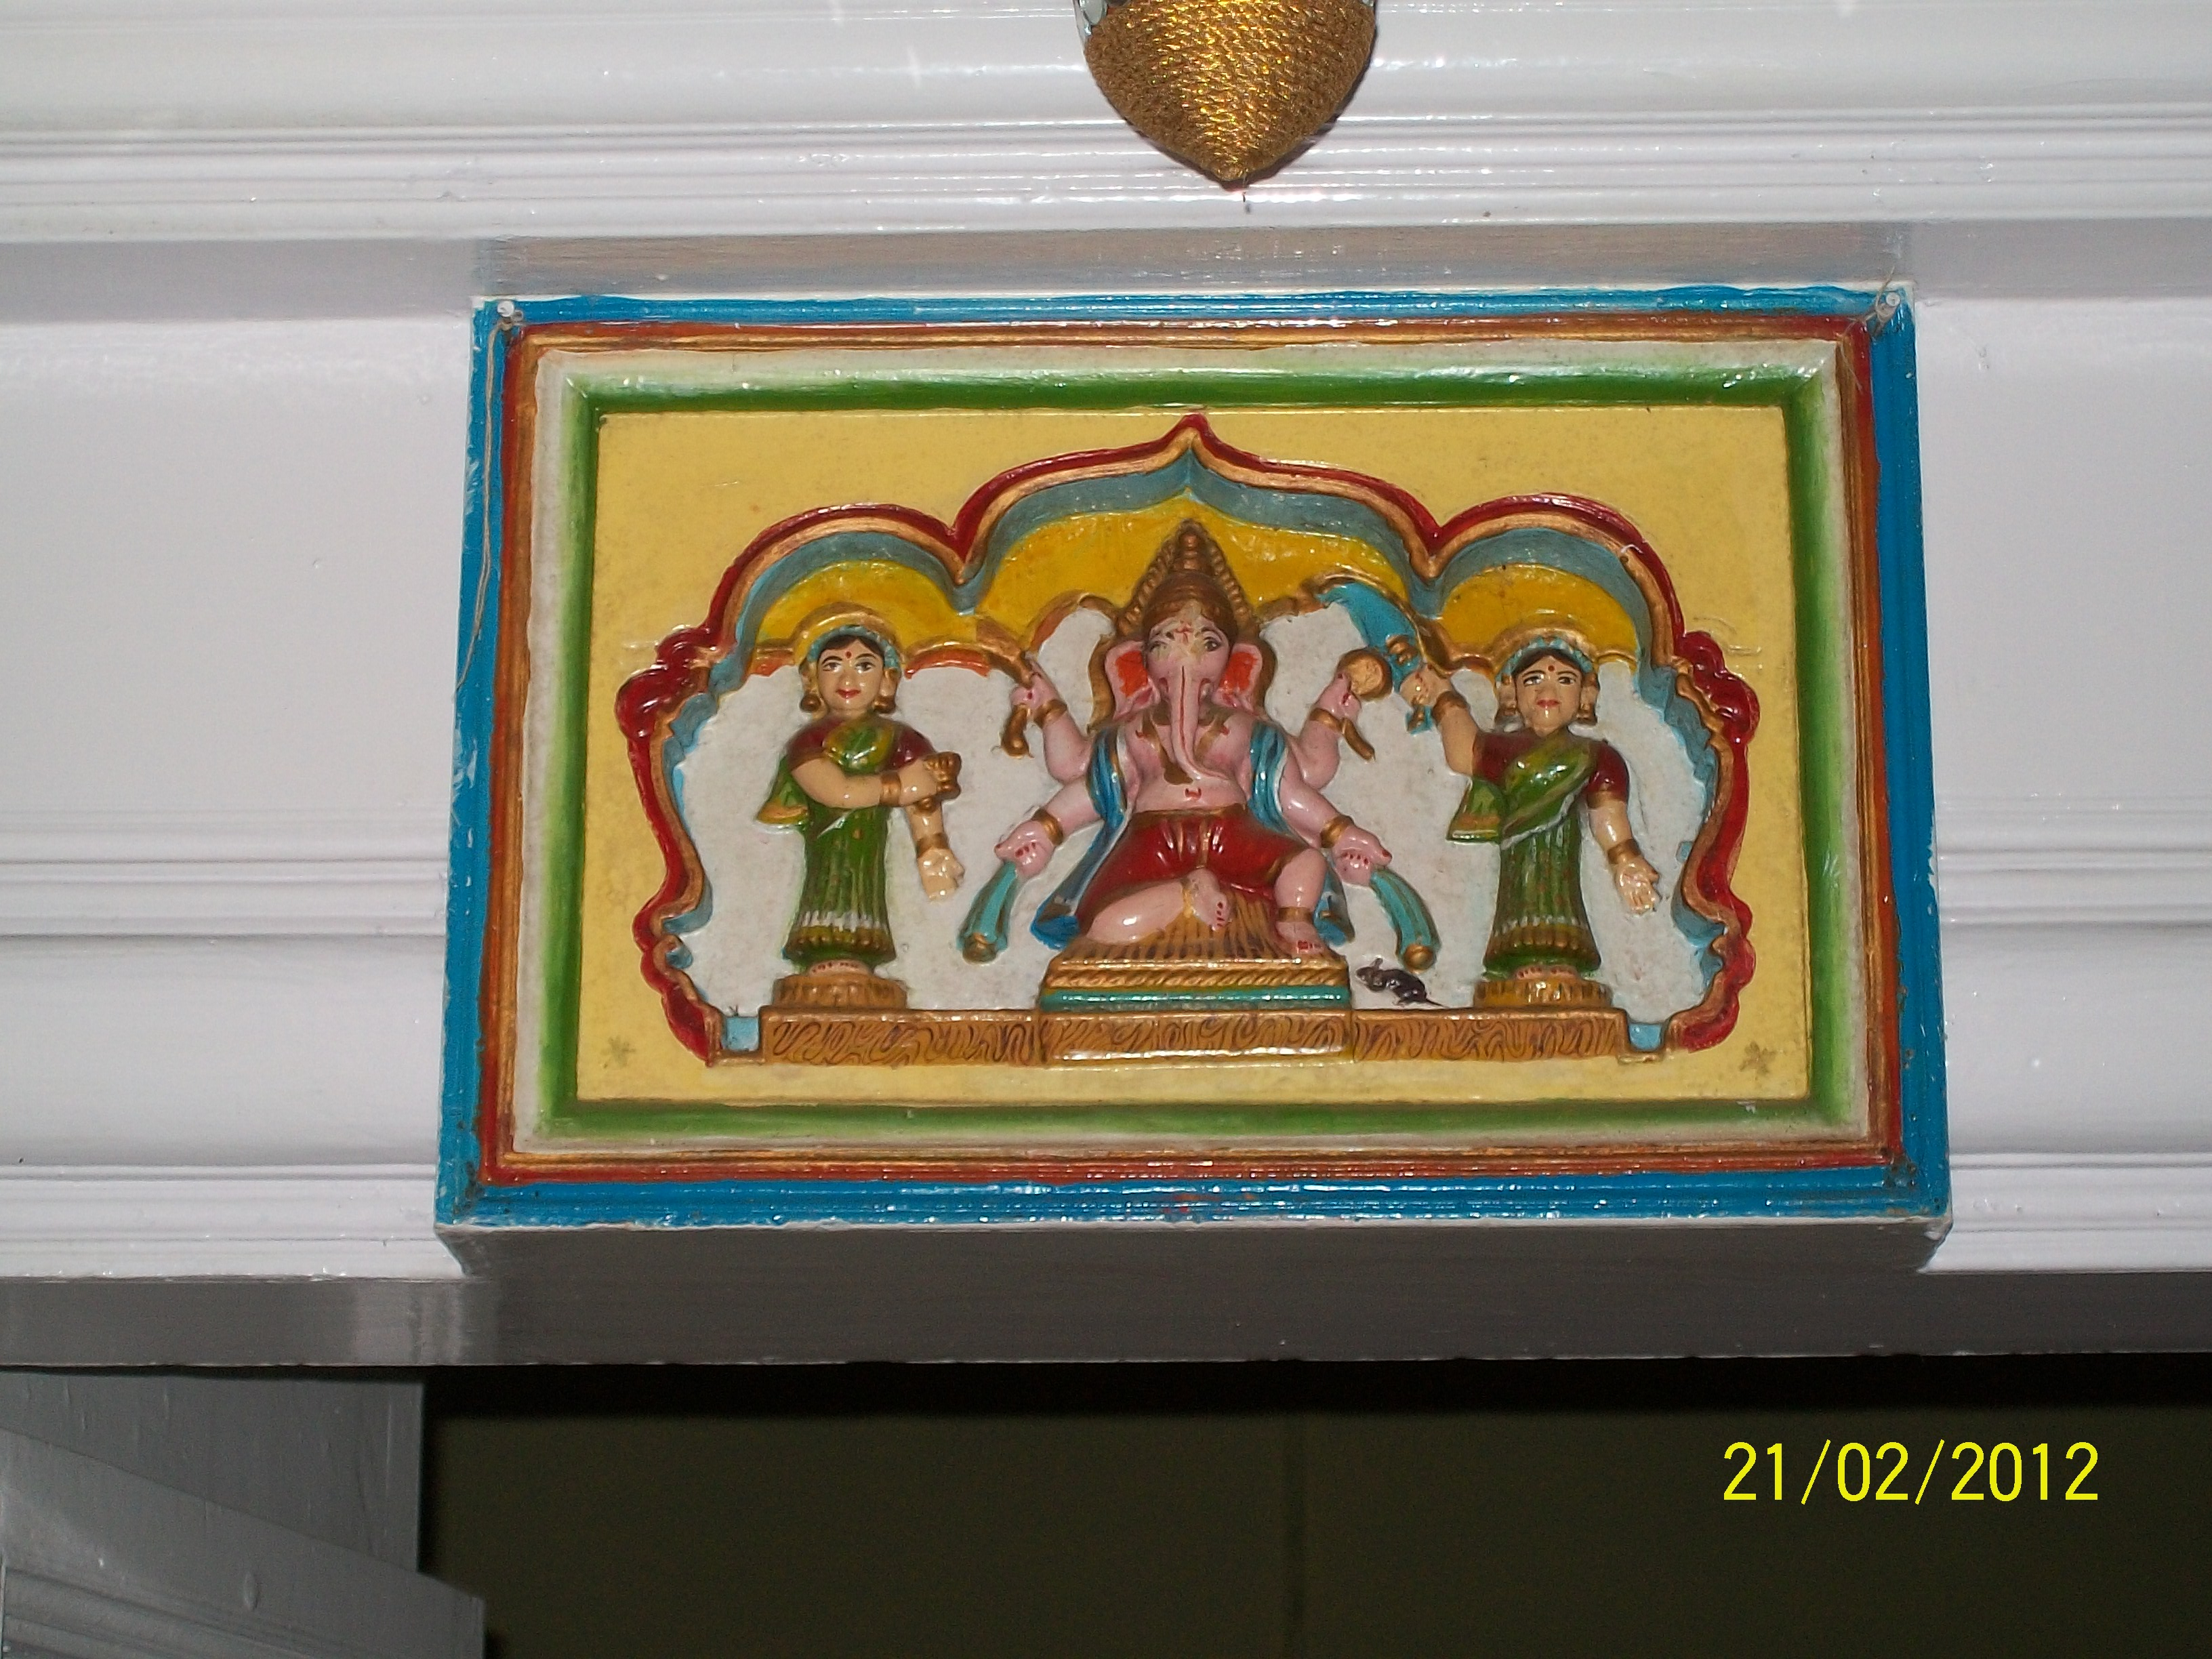 File:Ganesh Ji with Ridhi Siddhi on the Entrance Door Frame of Khase ...